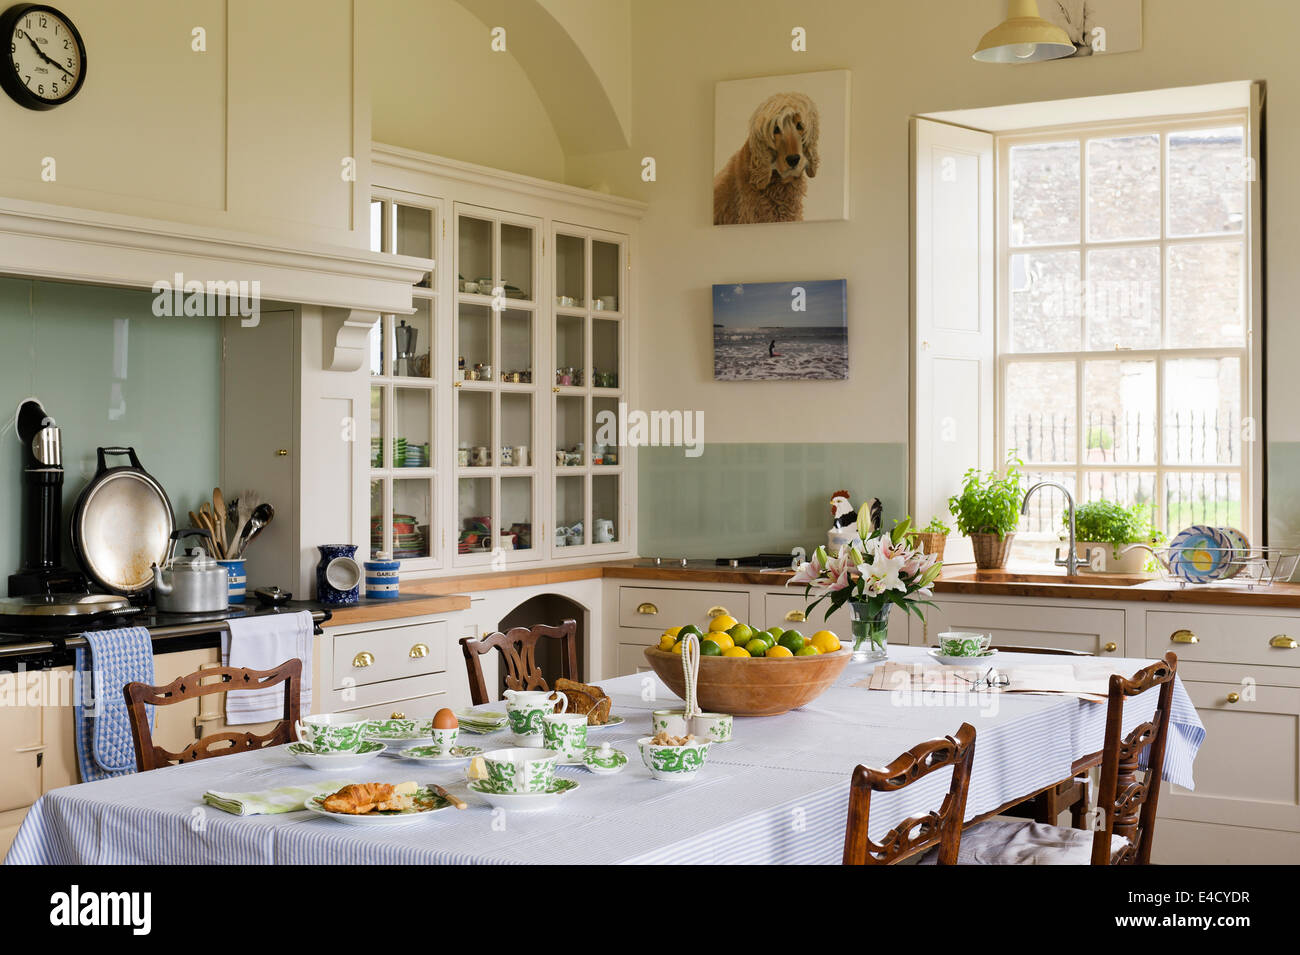 Mouseman chairs by Thompson of Kilburn and place around a dining table in a country style kitchen. - Stock Image